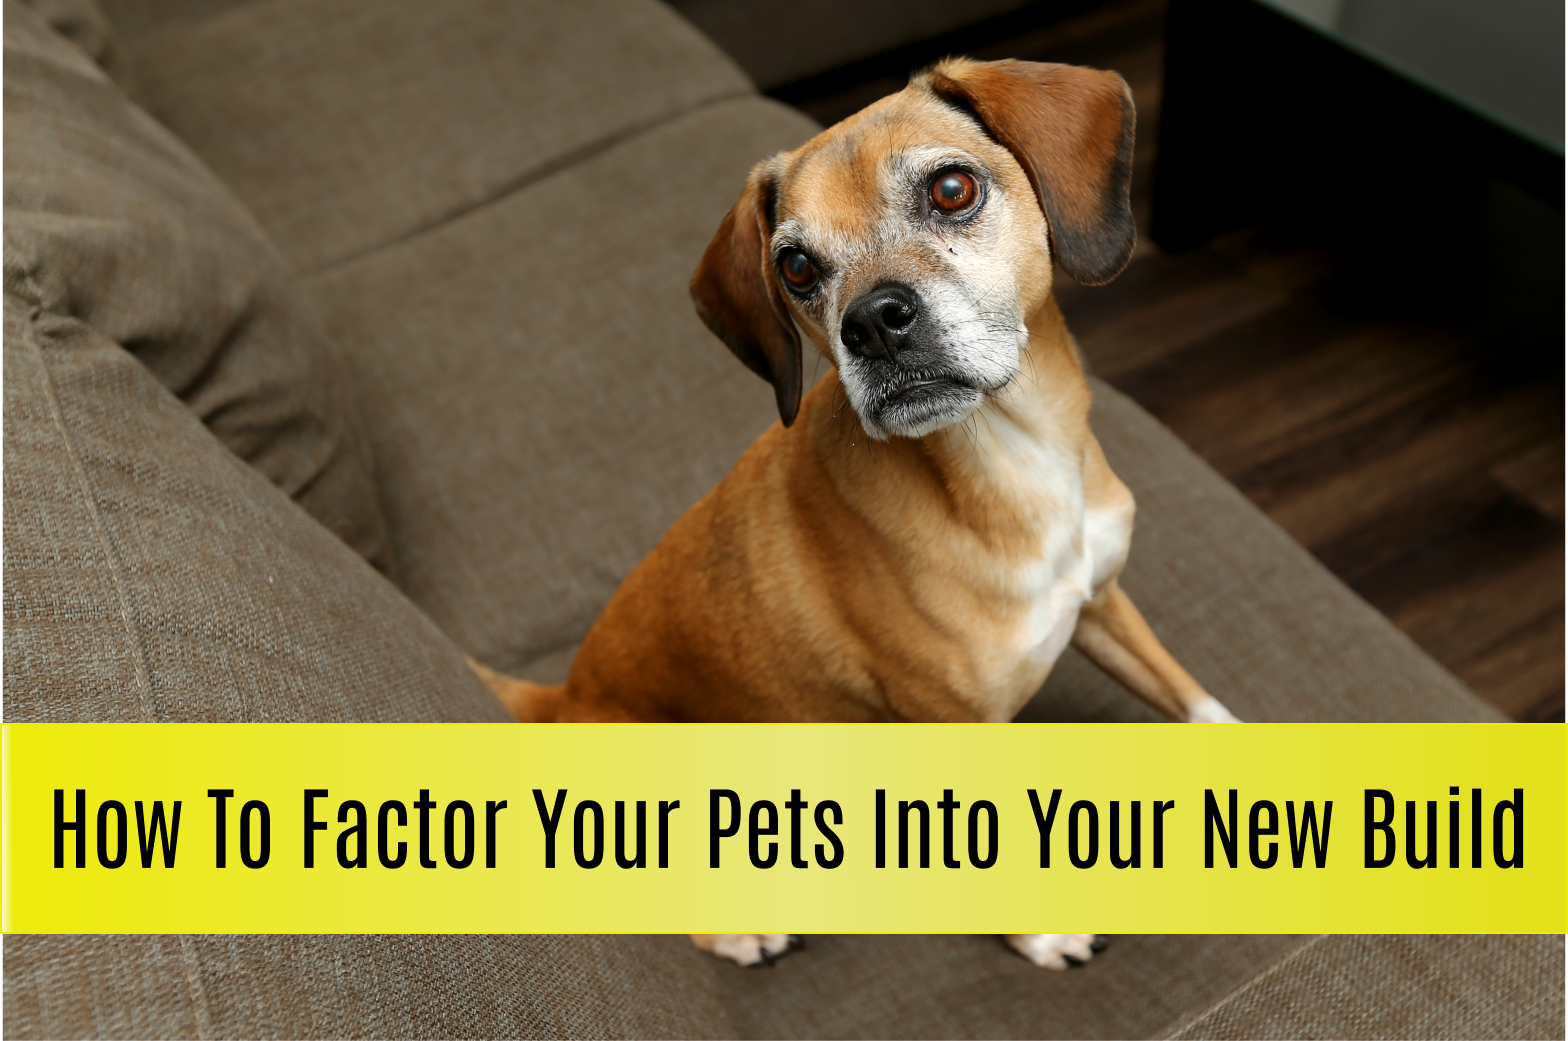 how to factor your pets into your new home build with emerald park homes custom home builder regina YQR mike holmes approved